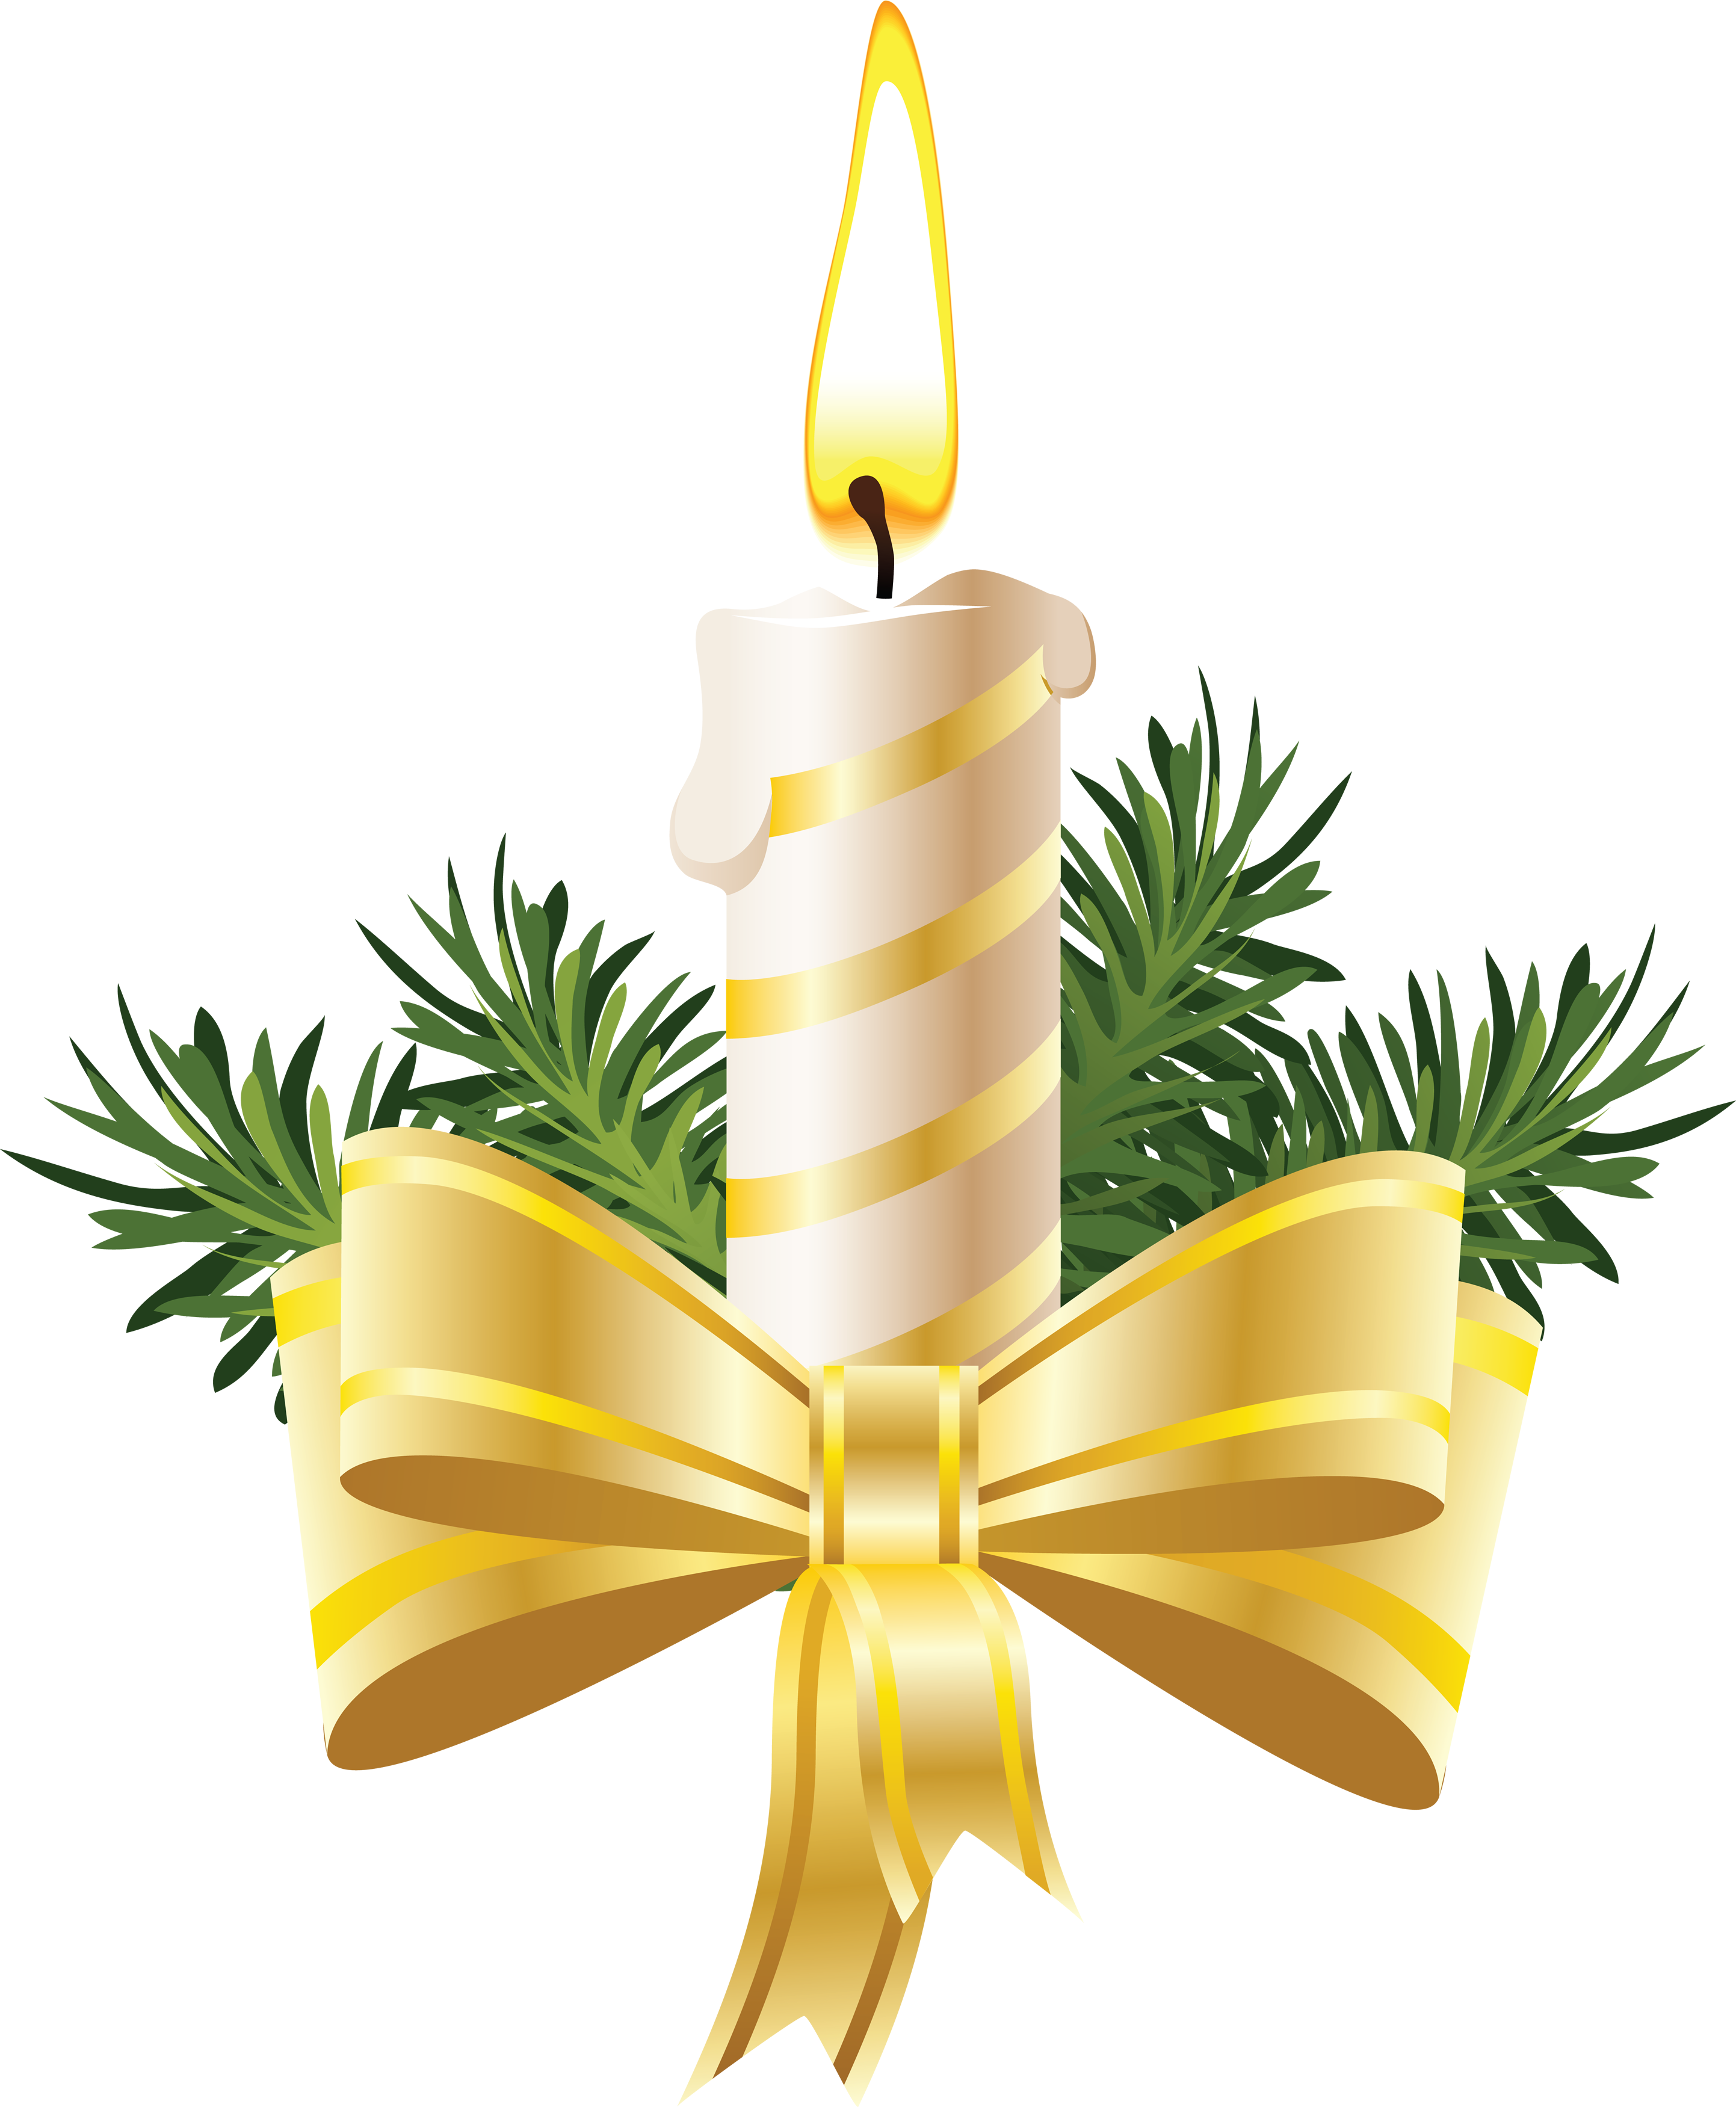 Candle Png Image - Candle, Transparent background PNG HD thumbnail